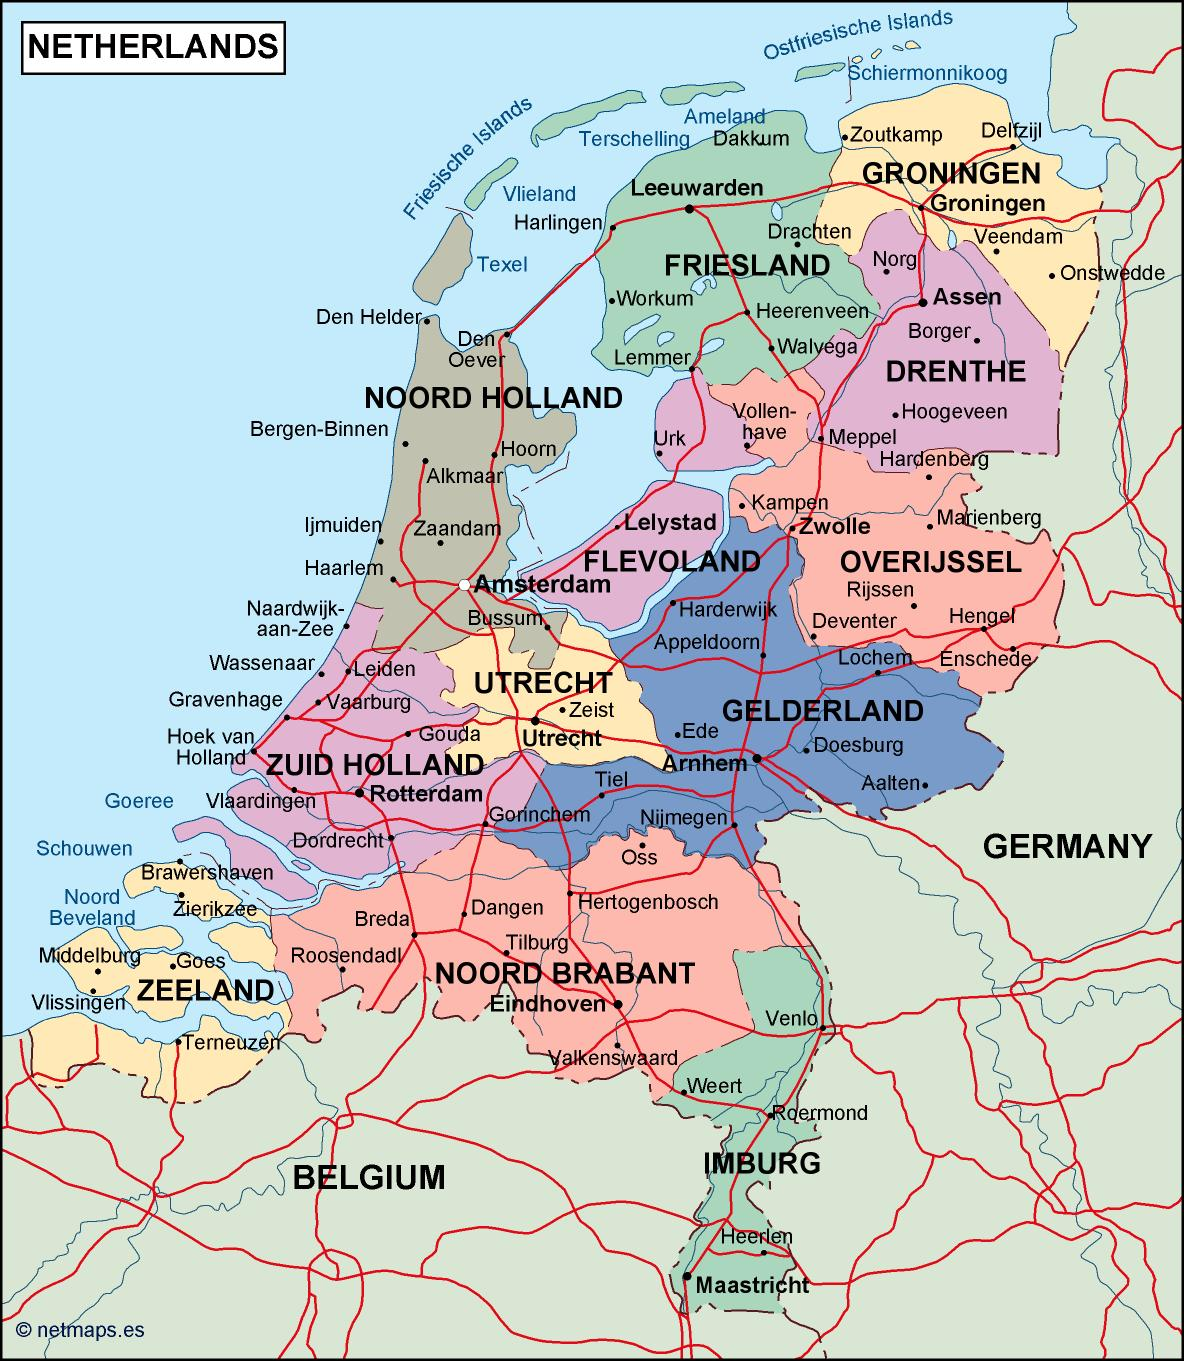 netherlands political map Illustrator Vector Eps maps Order and